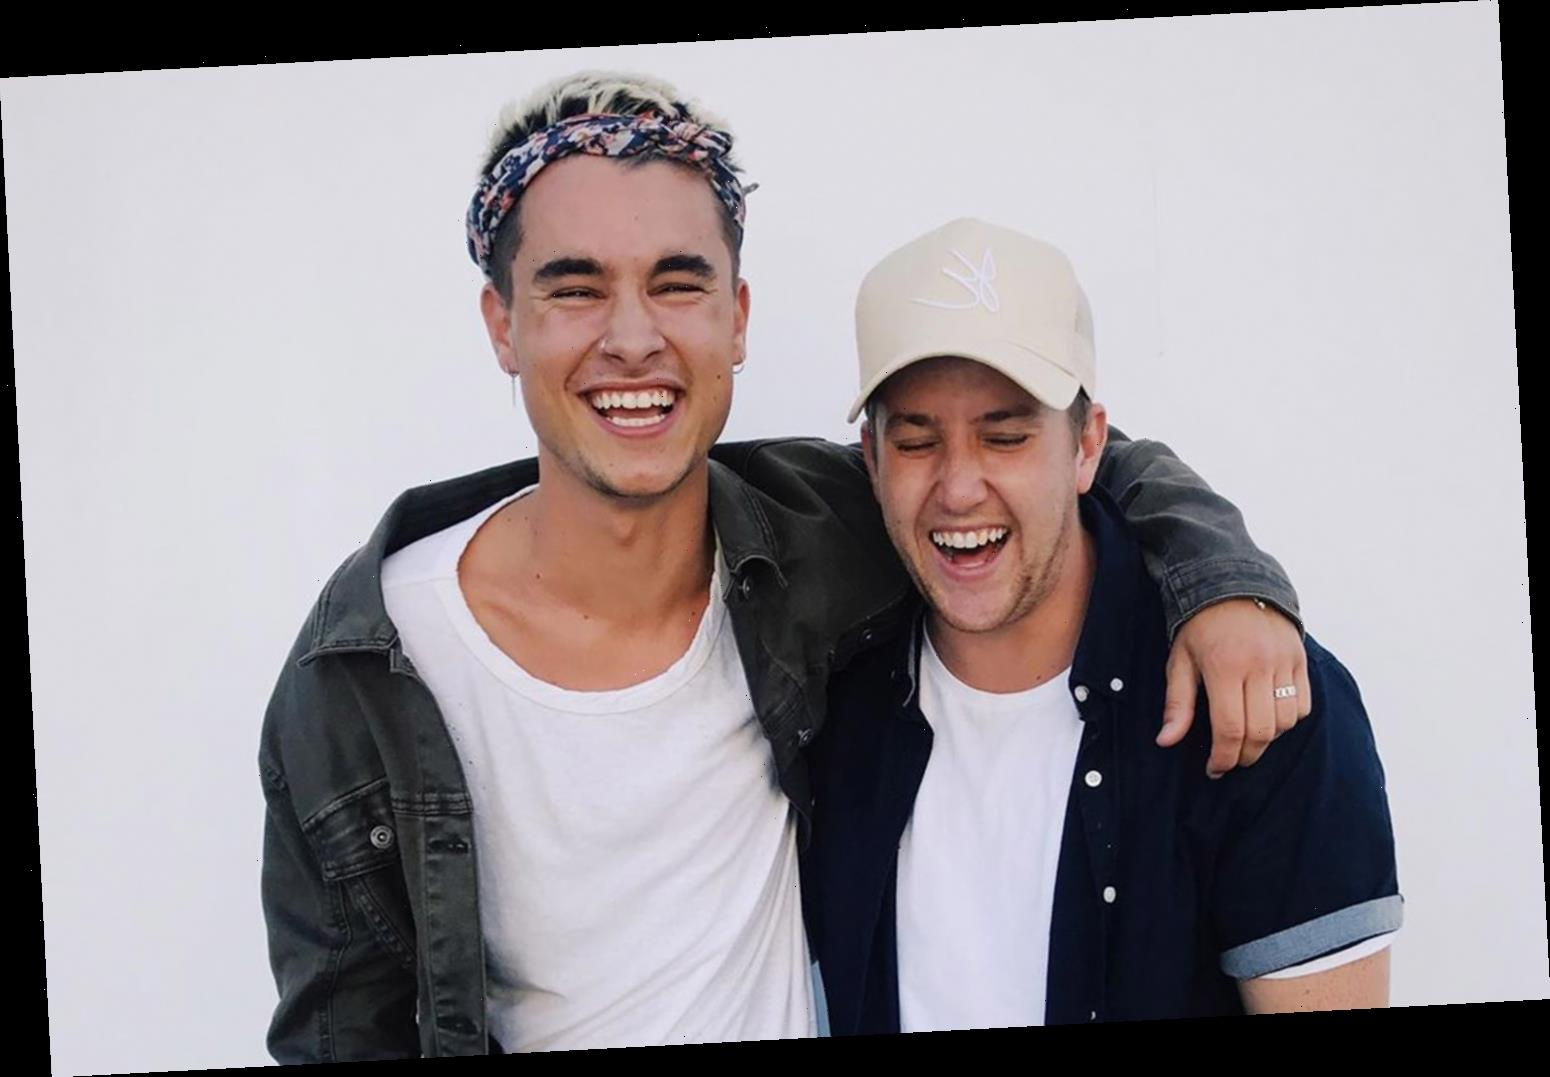 Kian Lawley Remembers YouTuber Corey La Barrie After His Car Crash Death: 'You Shouldn't Be Gone'